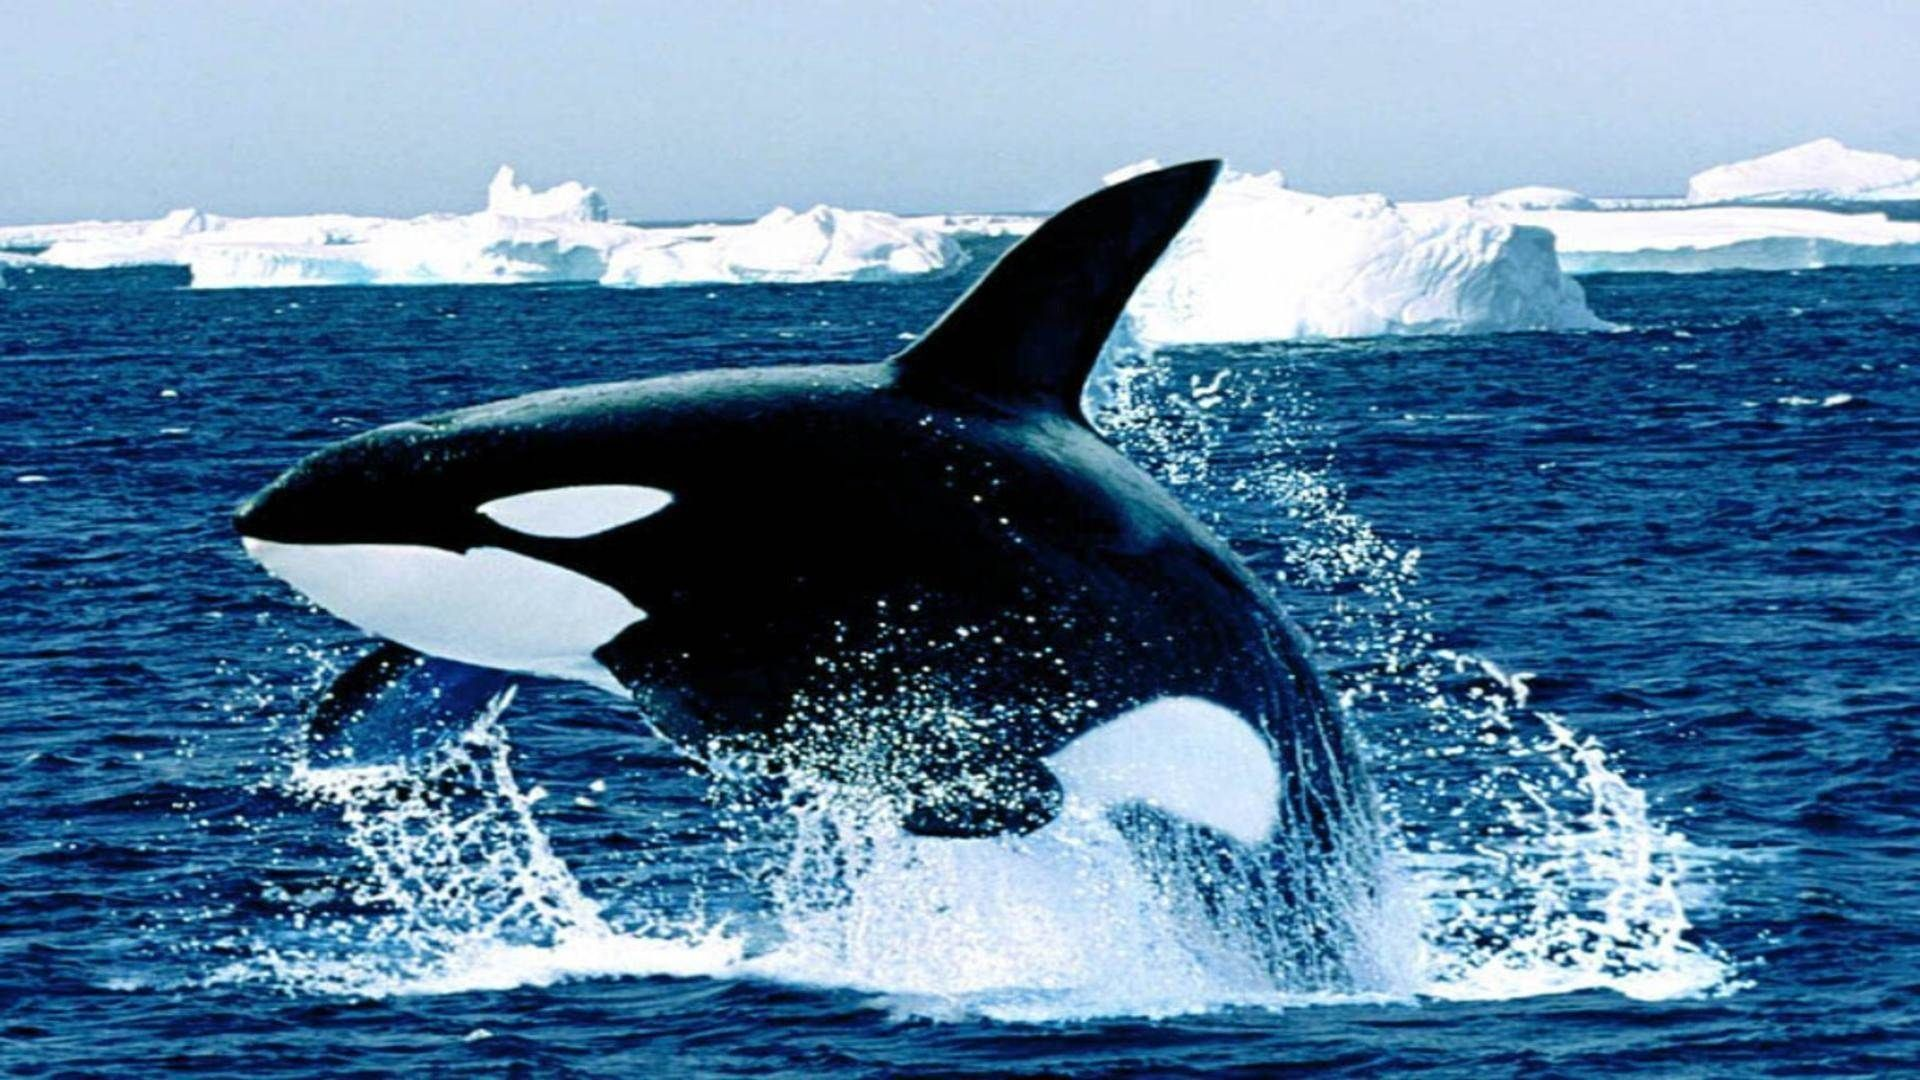 Humpback whales jumping wallpaper whale desktop wallpapers humpback whales jumping wallpaper whale desktop wallpapers adorable wallpapers thecheapjerseys Images